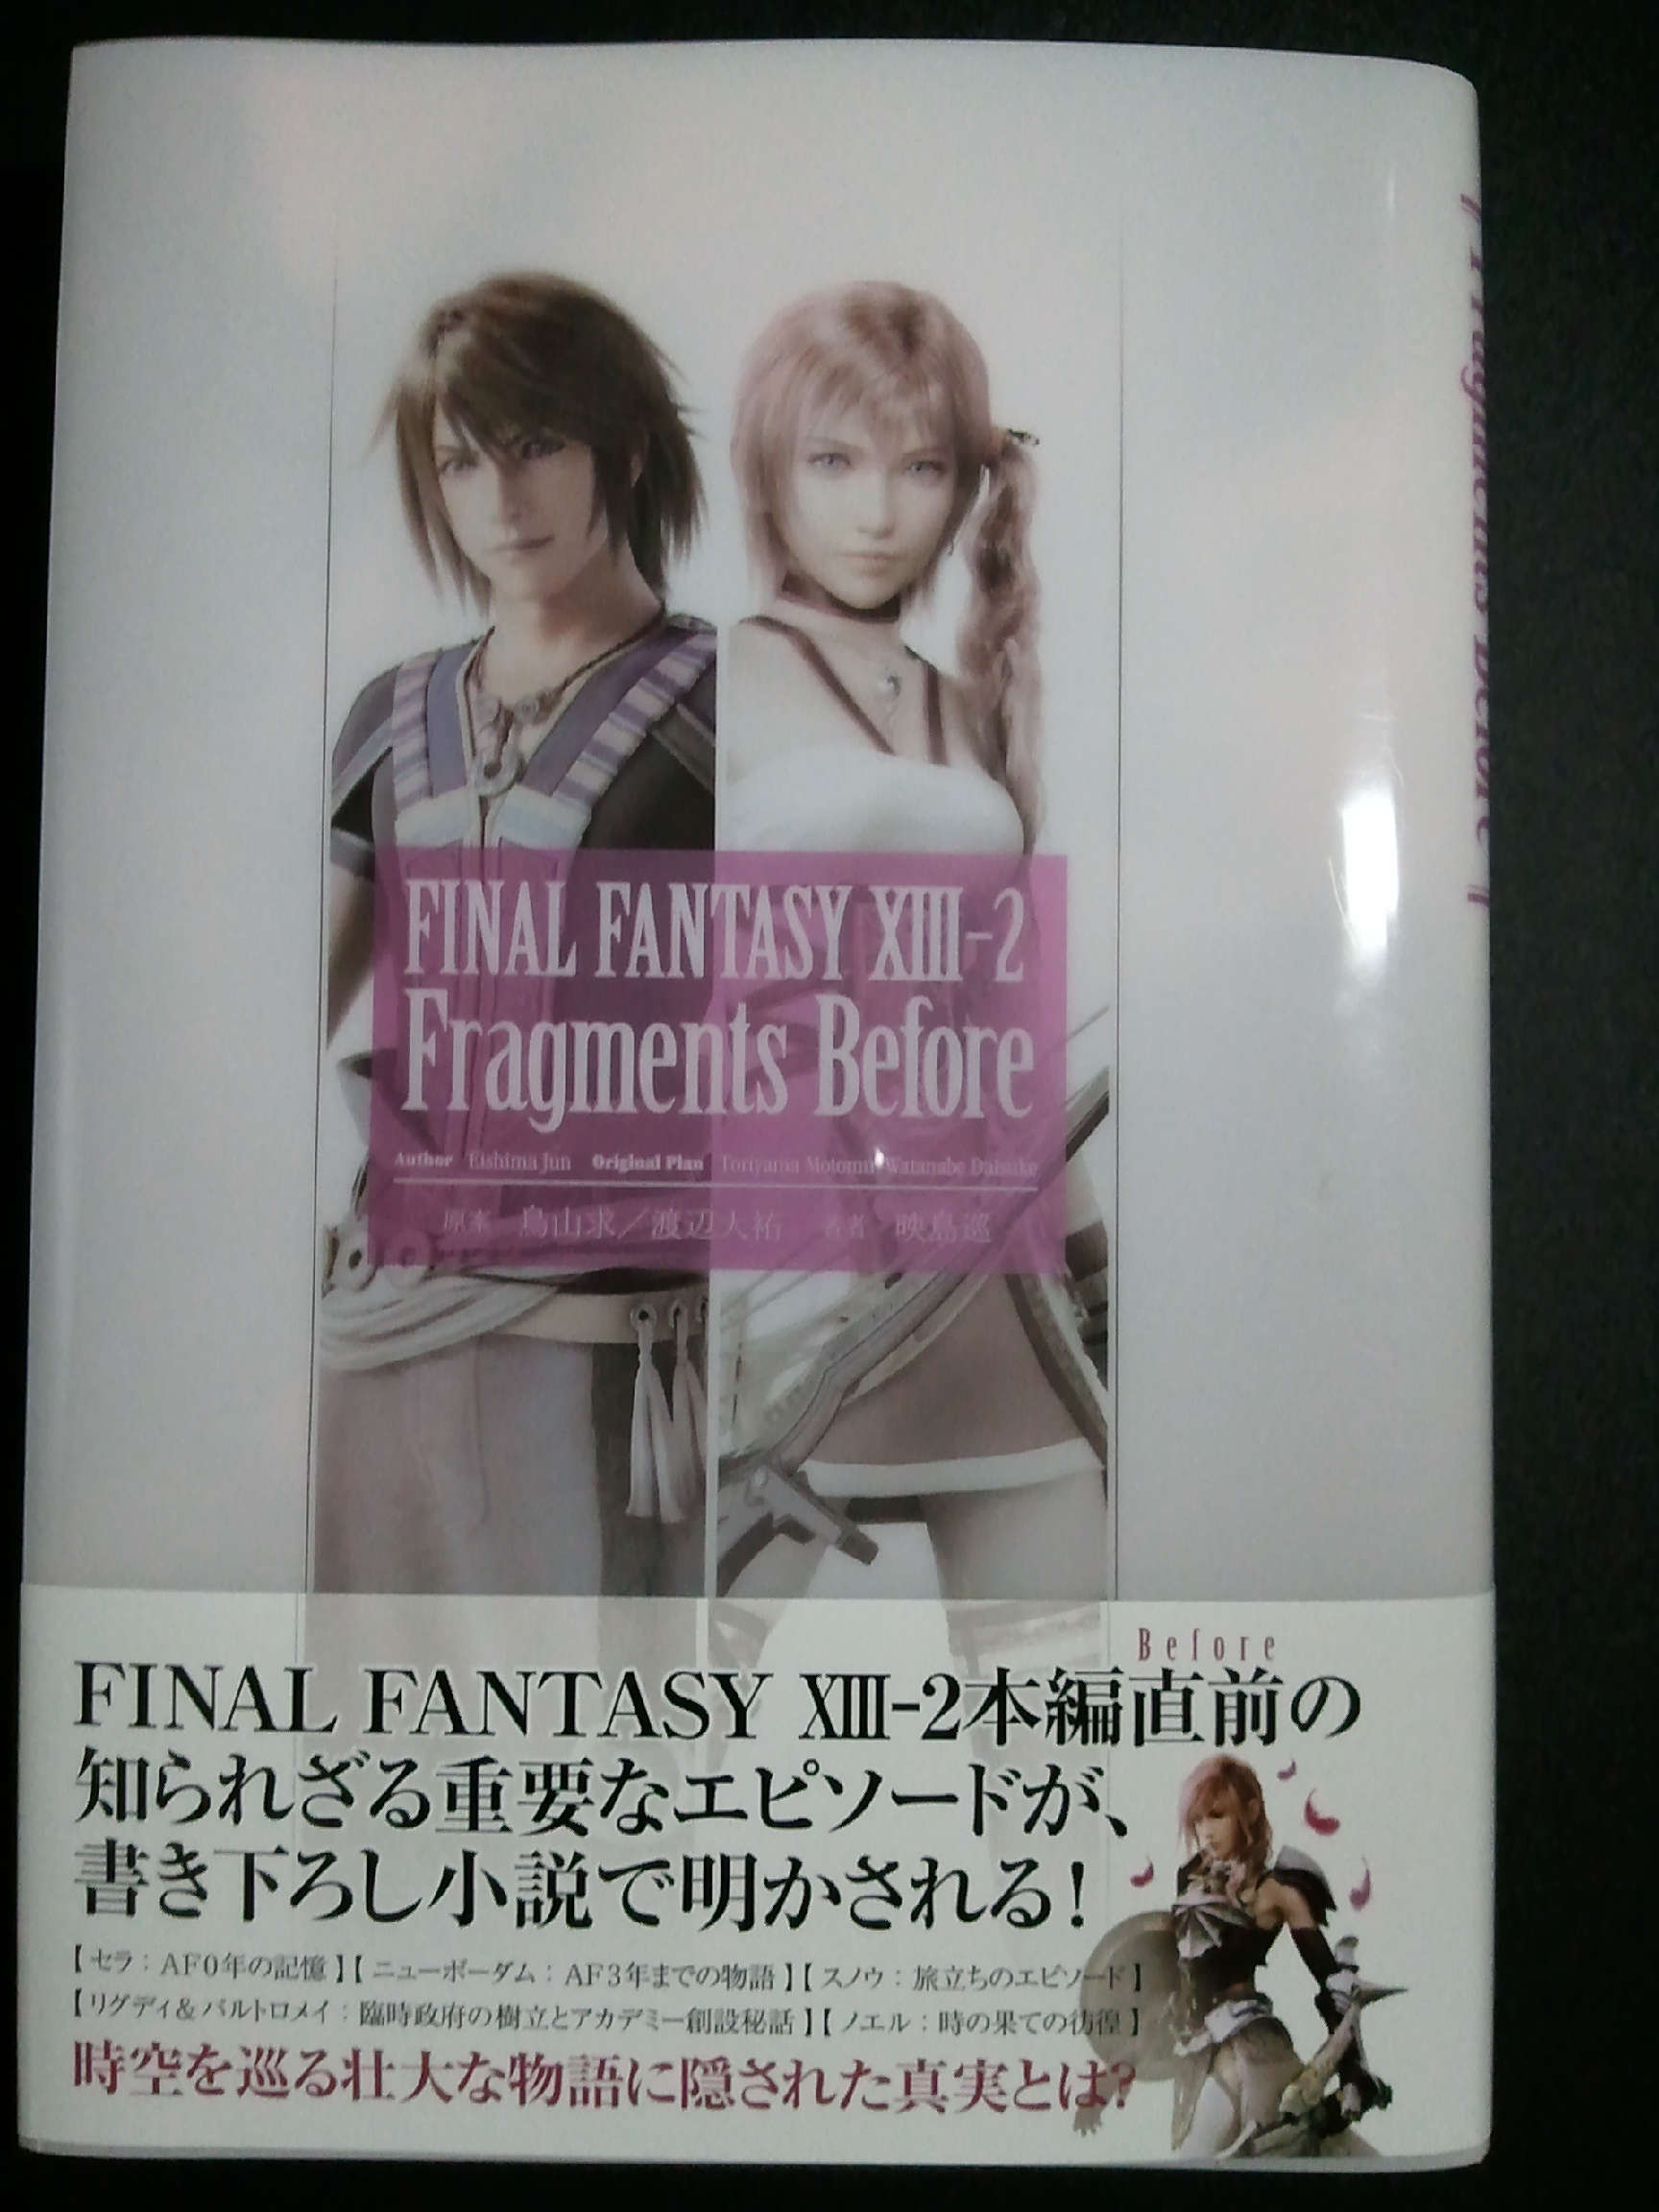 FF13-2 Fragments Before